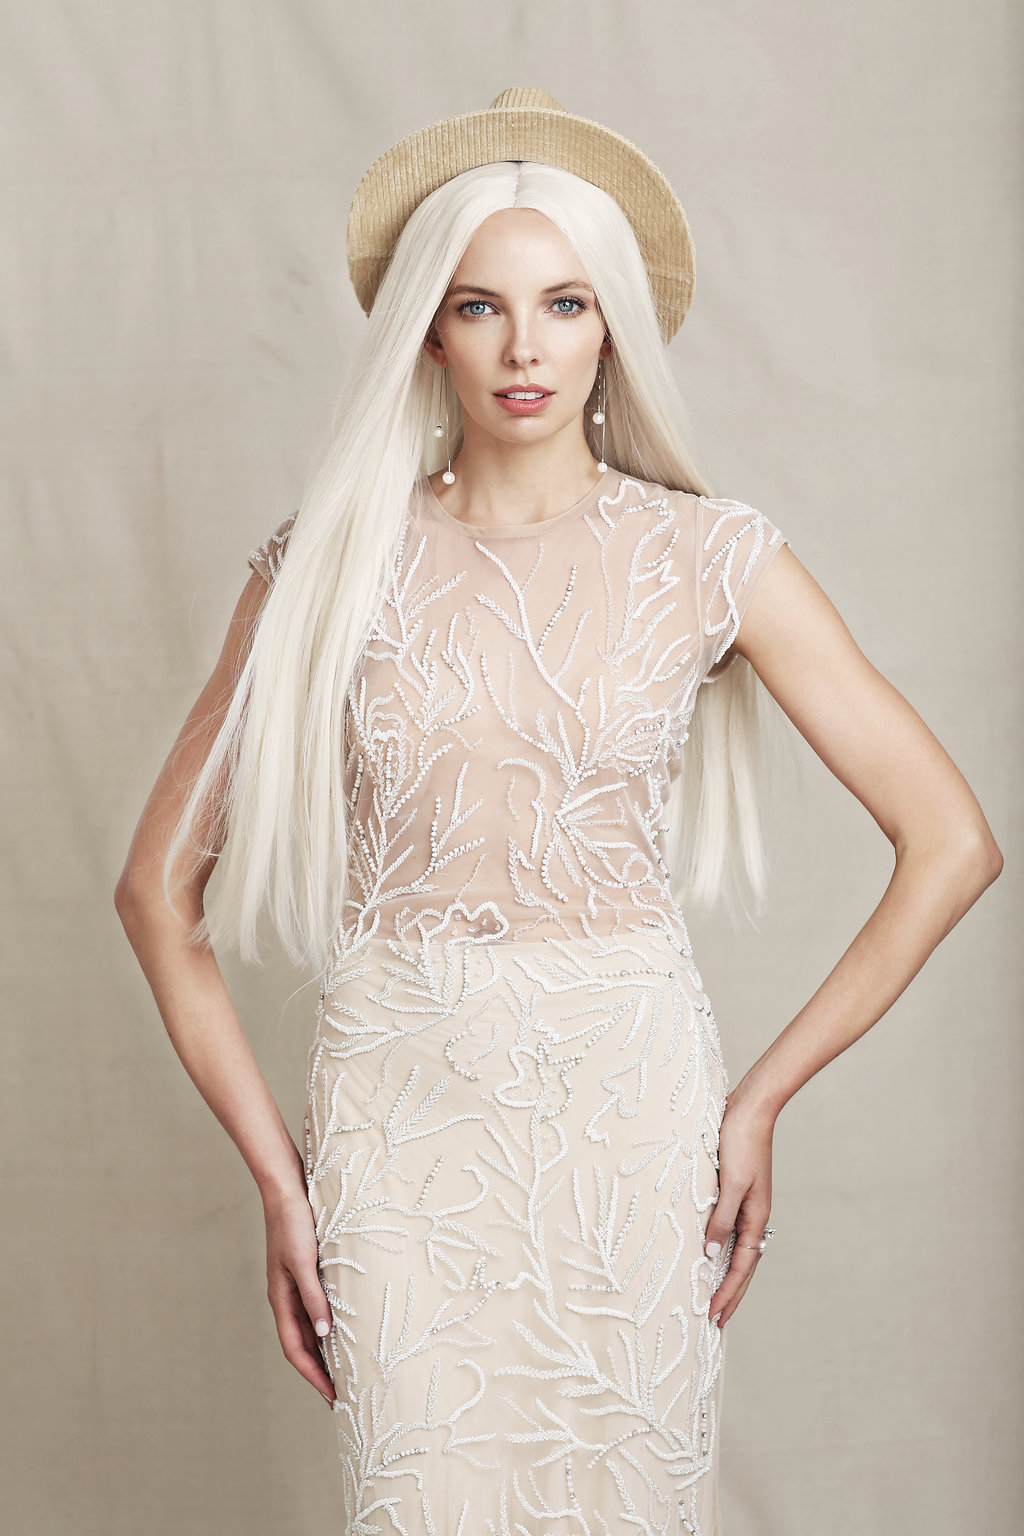 MODERN BOHEMIAN WEDDING DRESS DESIGNER AUSTRALIA